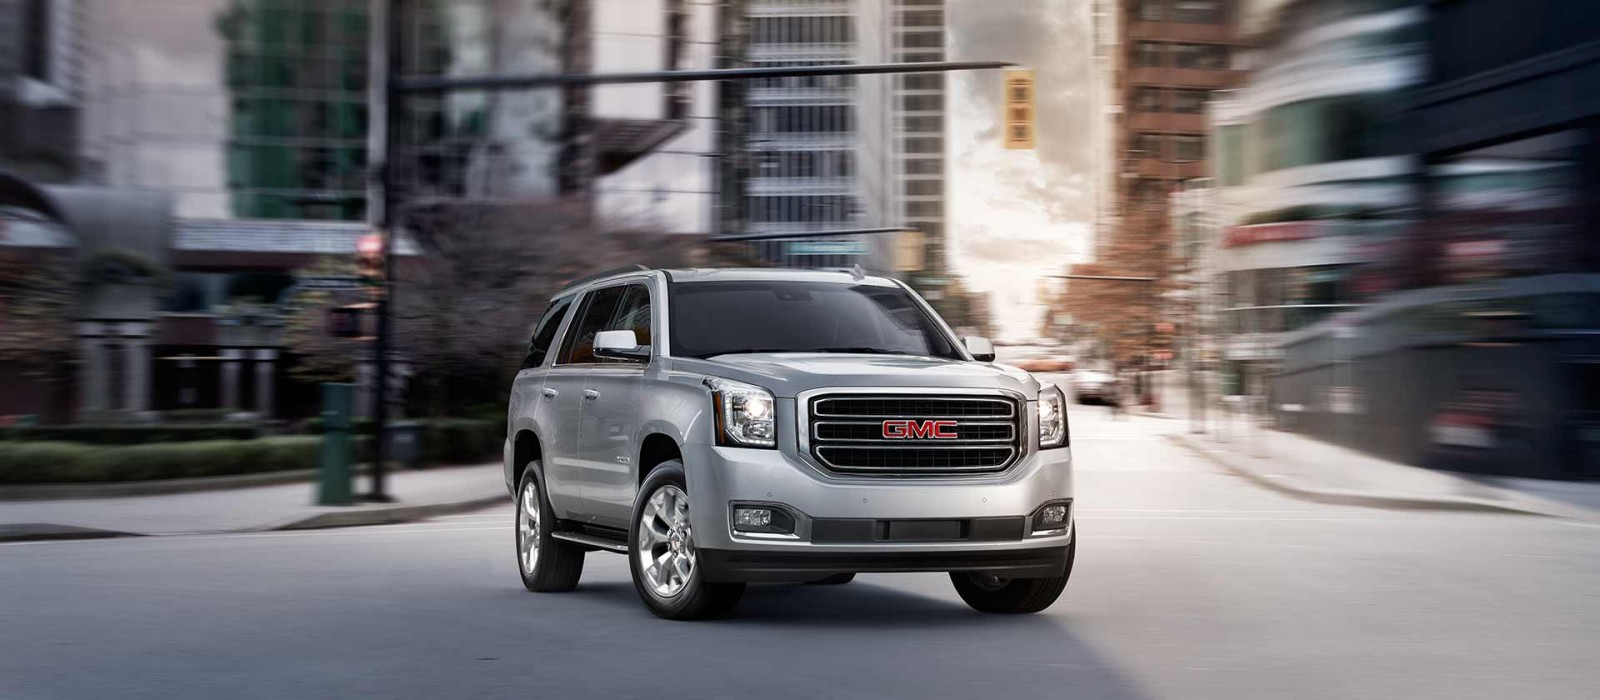 from central vehicle exclude require suv leases fee com specials all doc payments acquisition new miles trucks lease prep registration gmc year per boston cars and